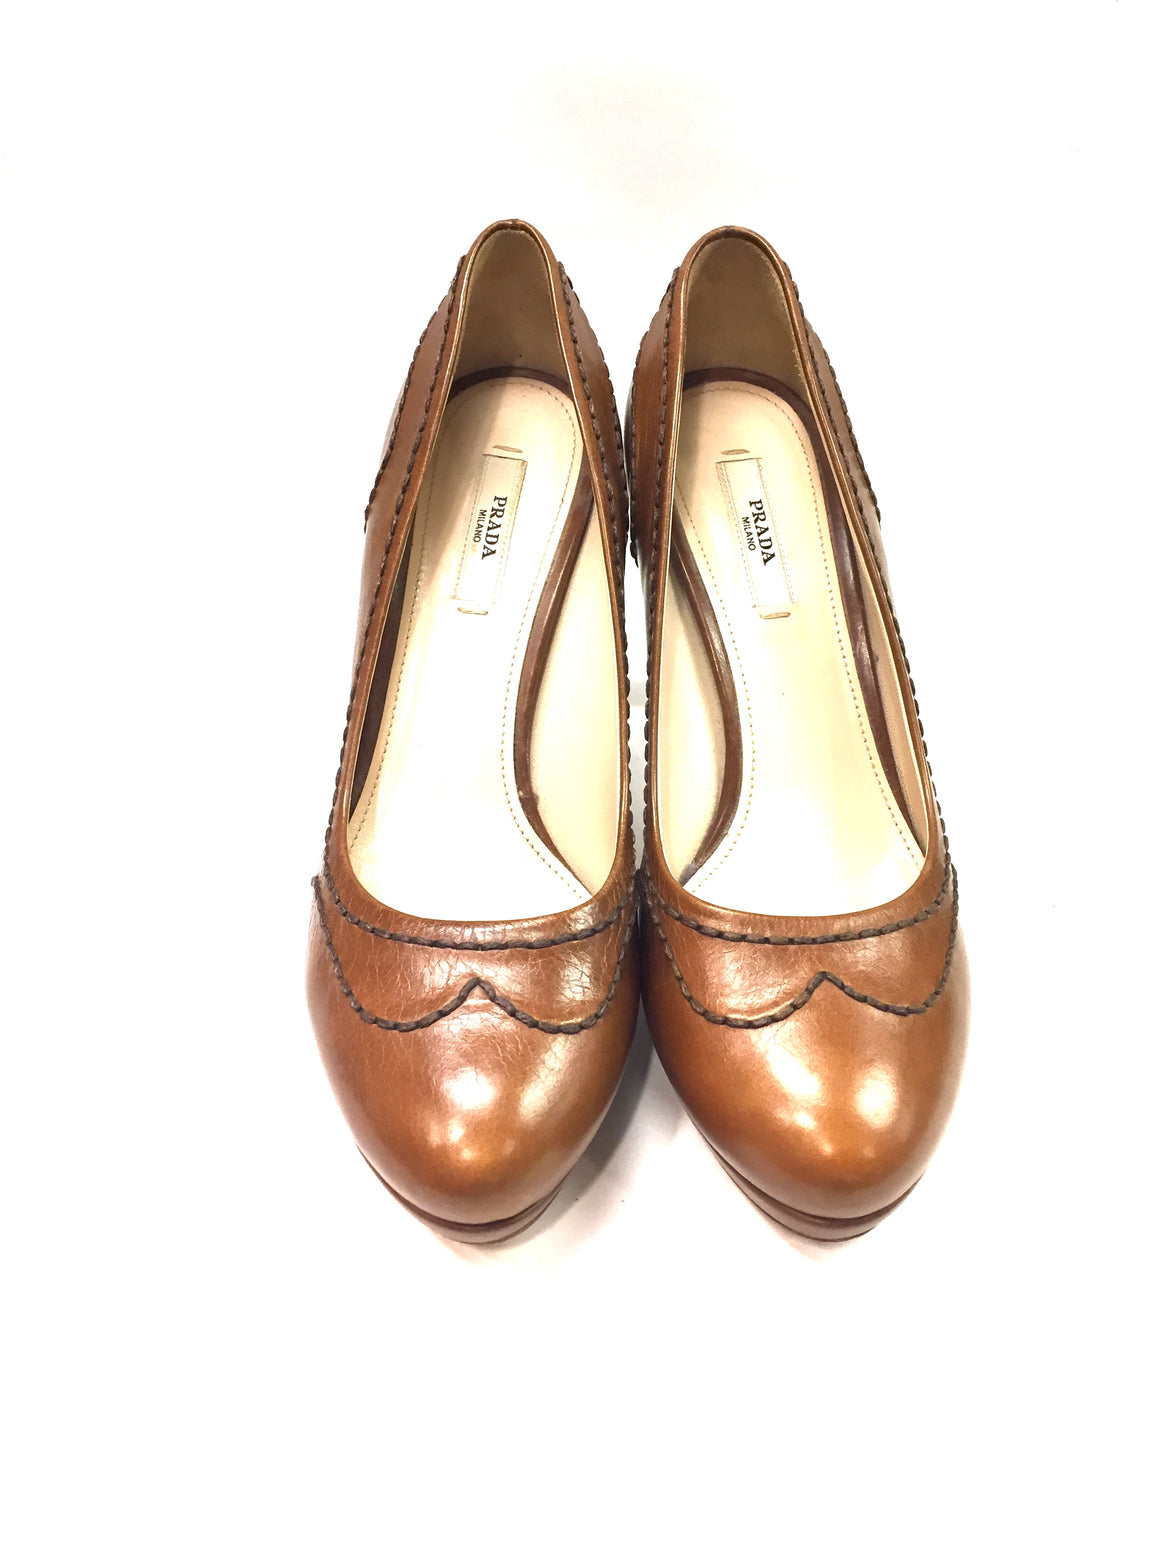 PRADA Tan Leather Rounded-Toe Stitching Accent Platform Heel Pumps Shoes Sz37